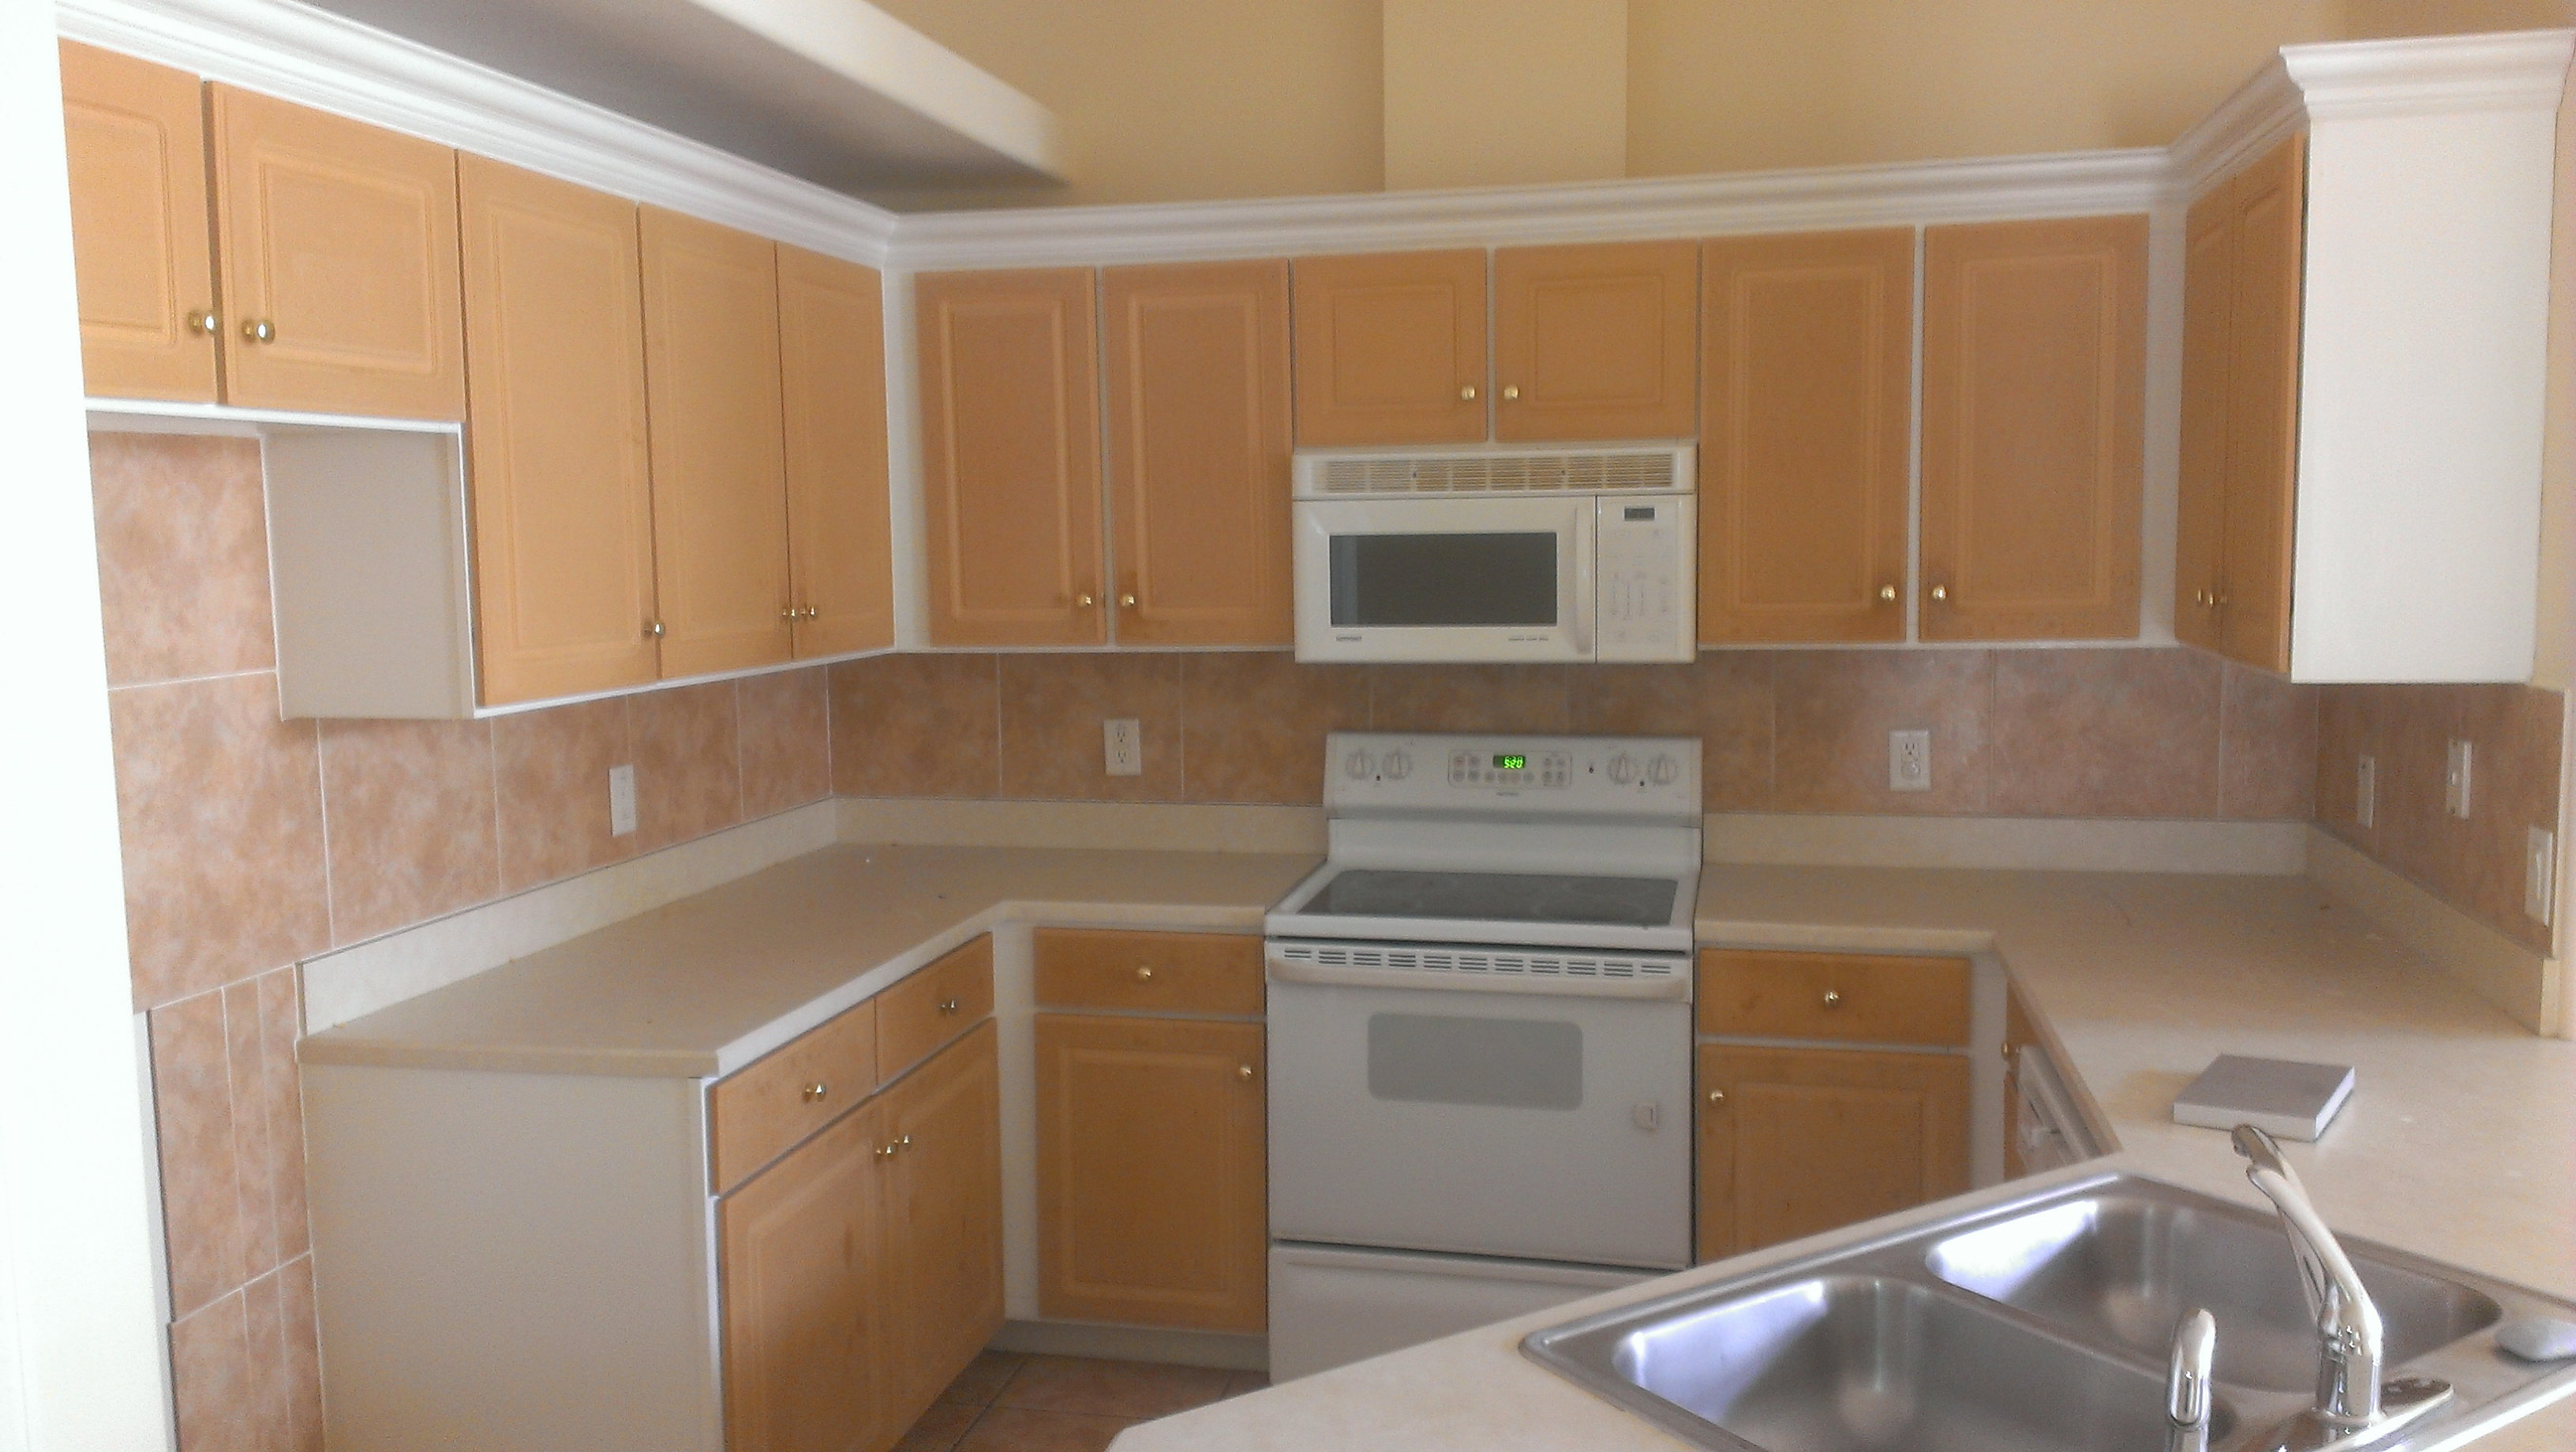 Interior How To Make Kitchen Cabinets cabinet refacing contractors in daytona beach and north florida about kwekel painitng